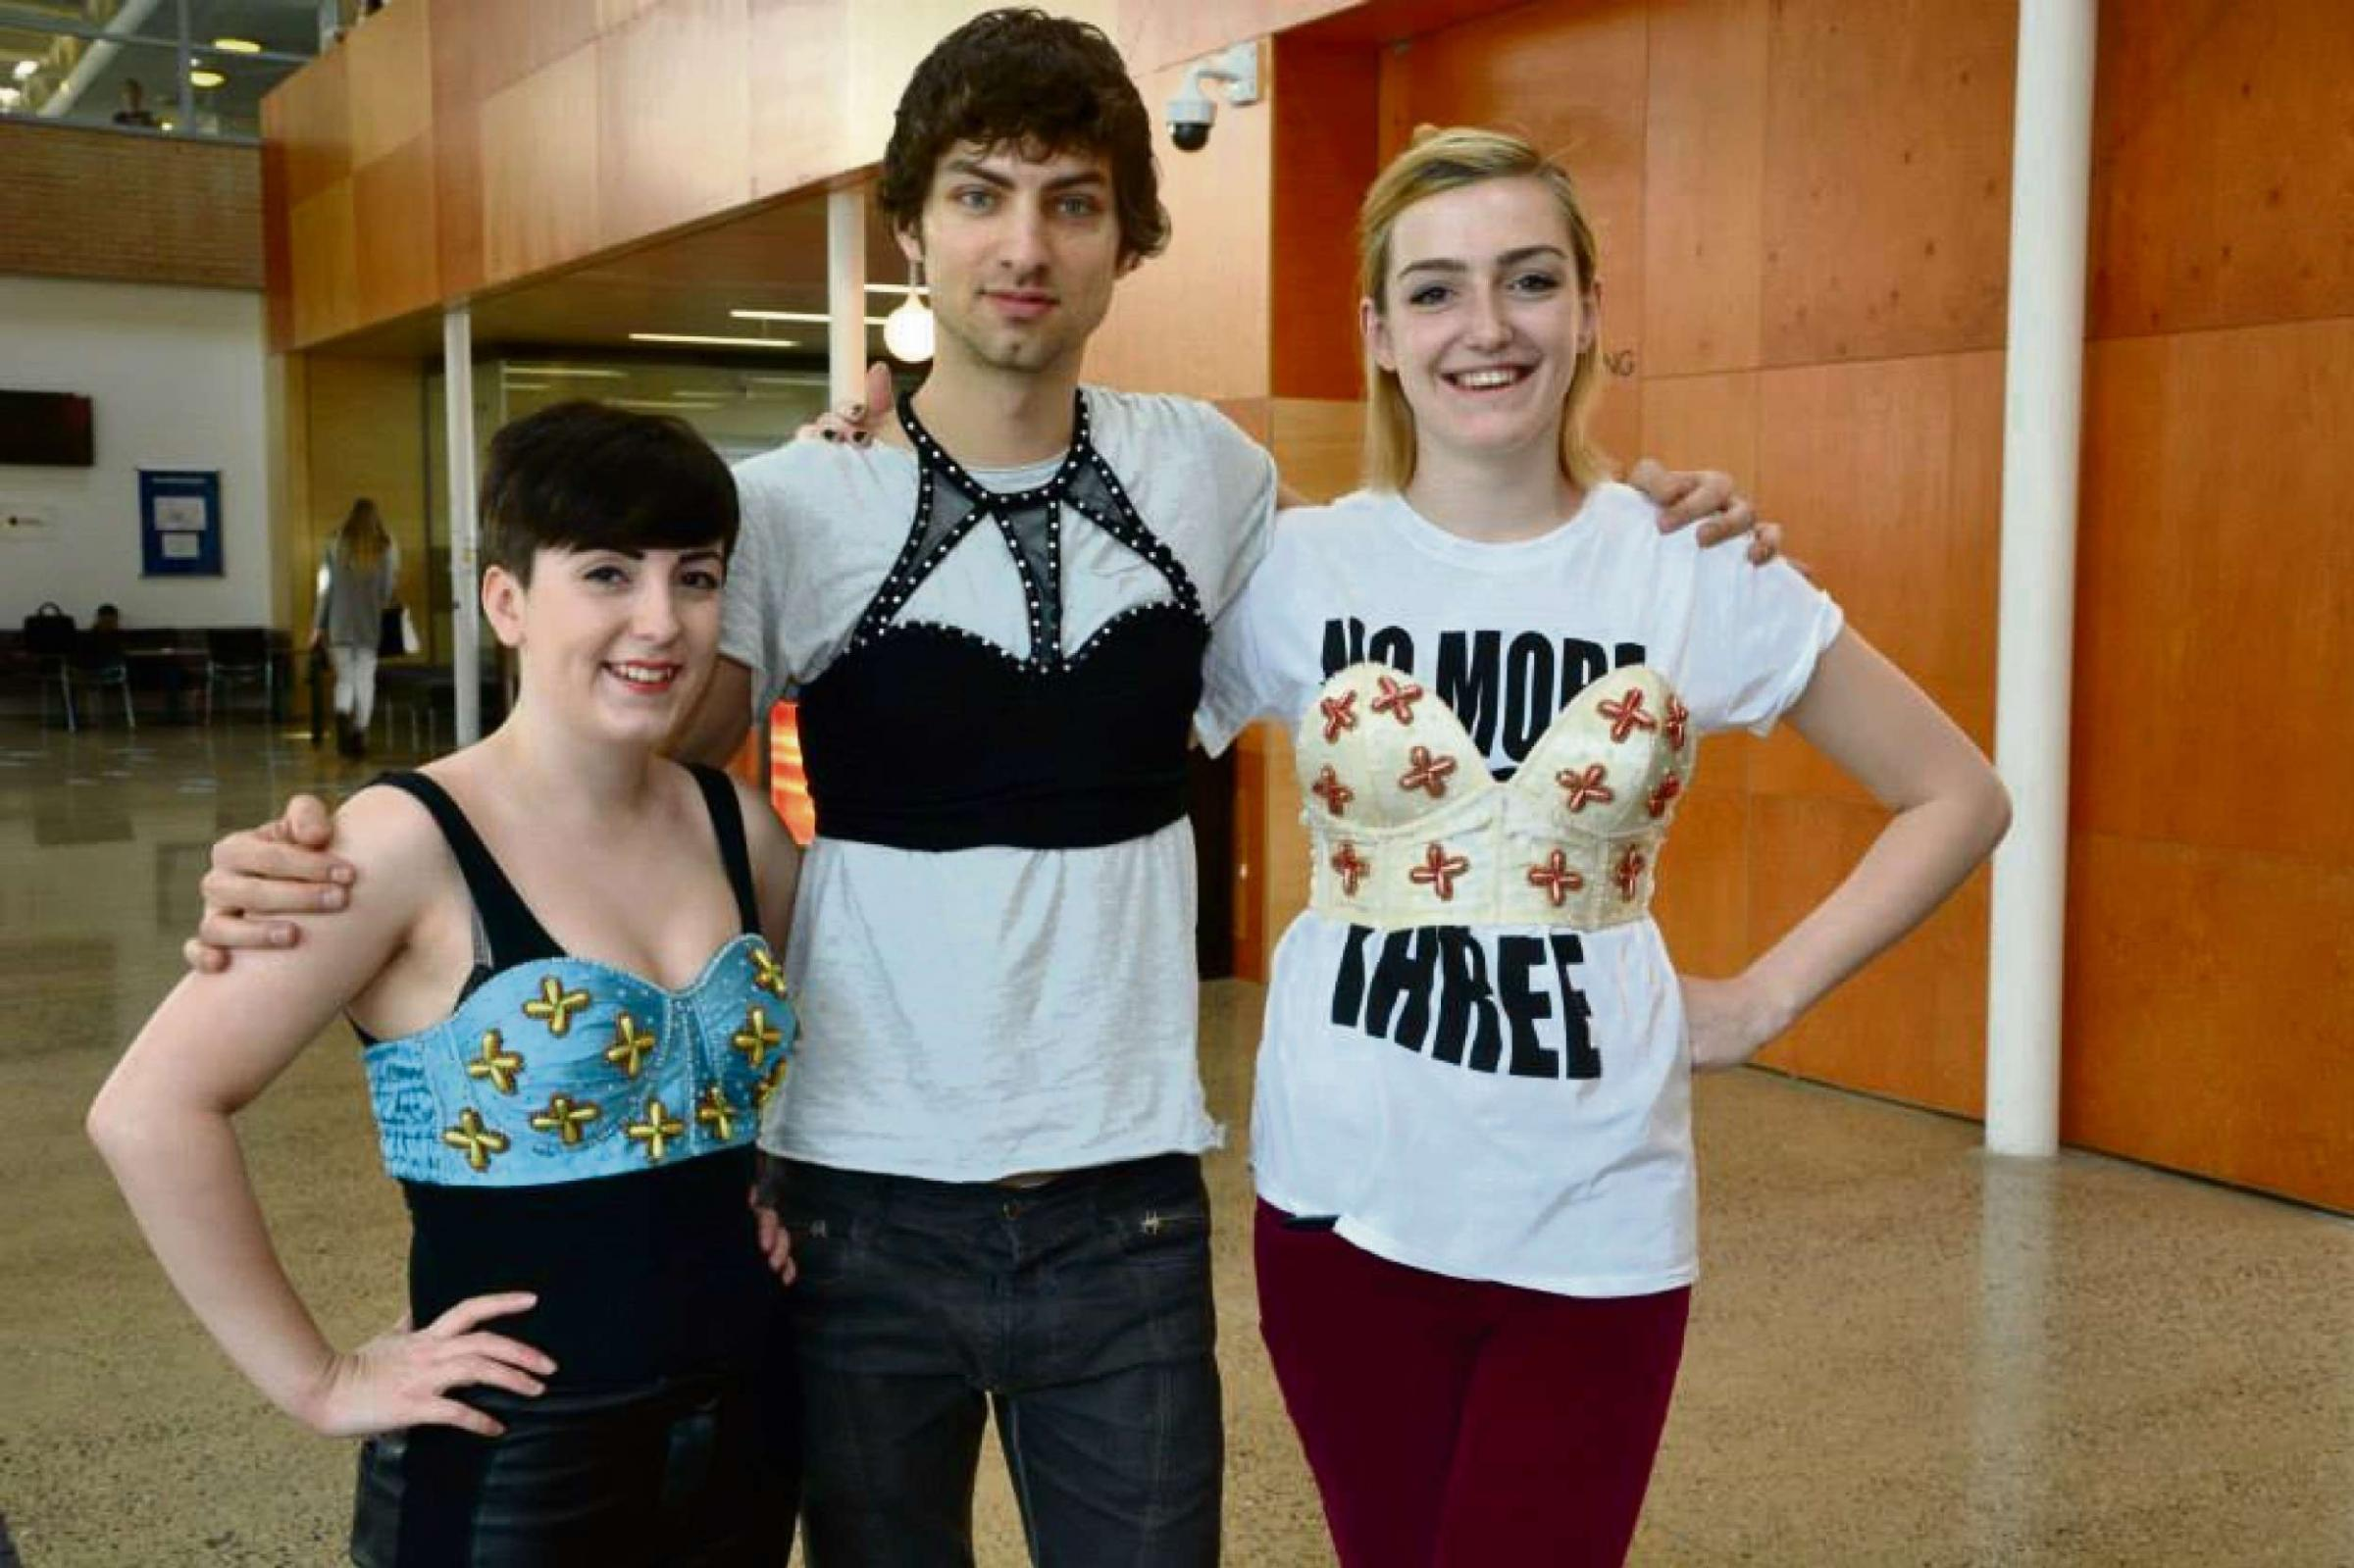 PROTESTING: Newport student Becky Evans (left), with friends Milan Juracka and Ewa Lewszyk